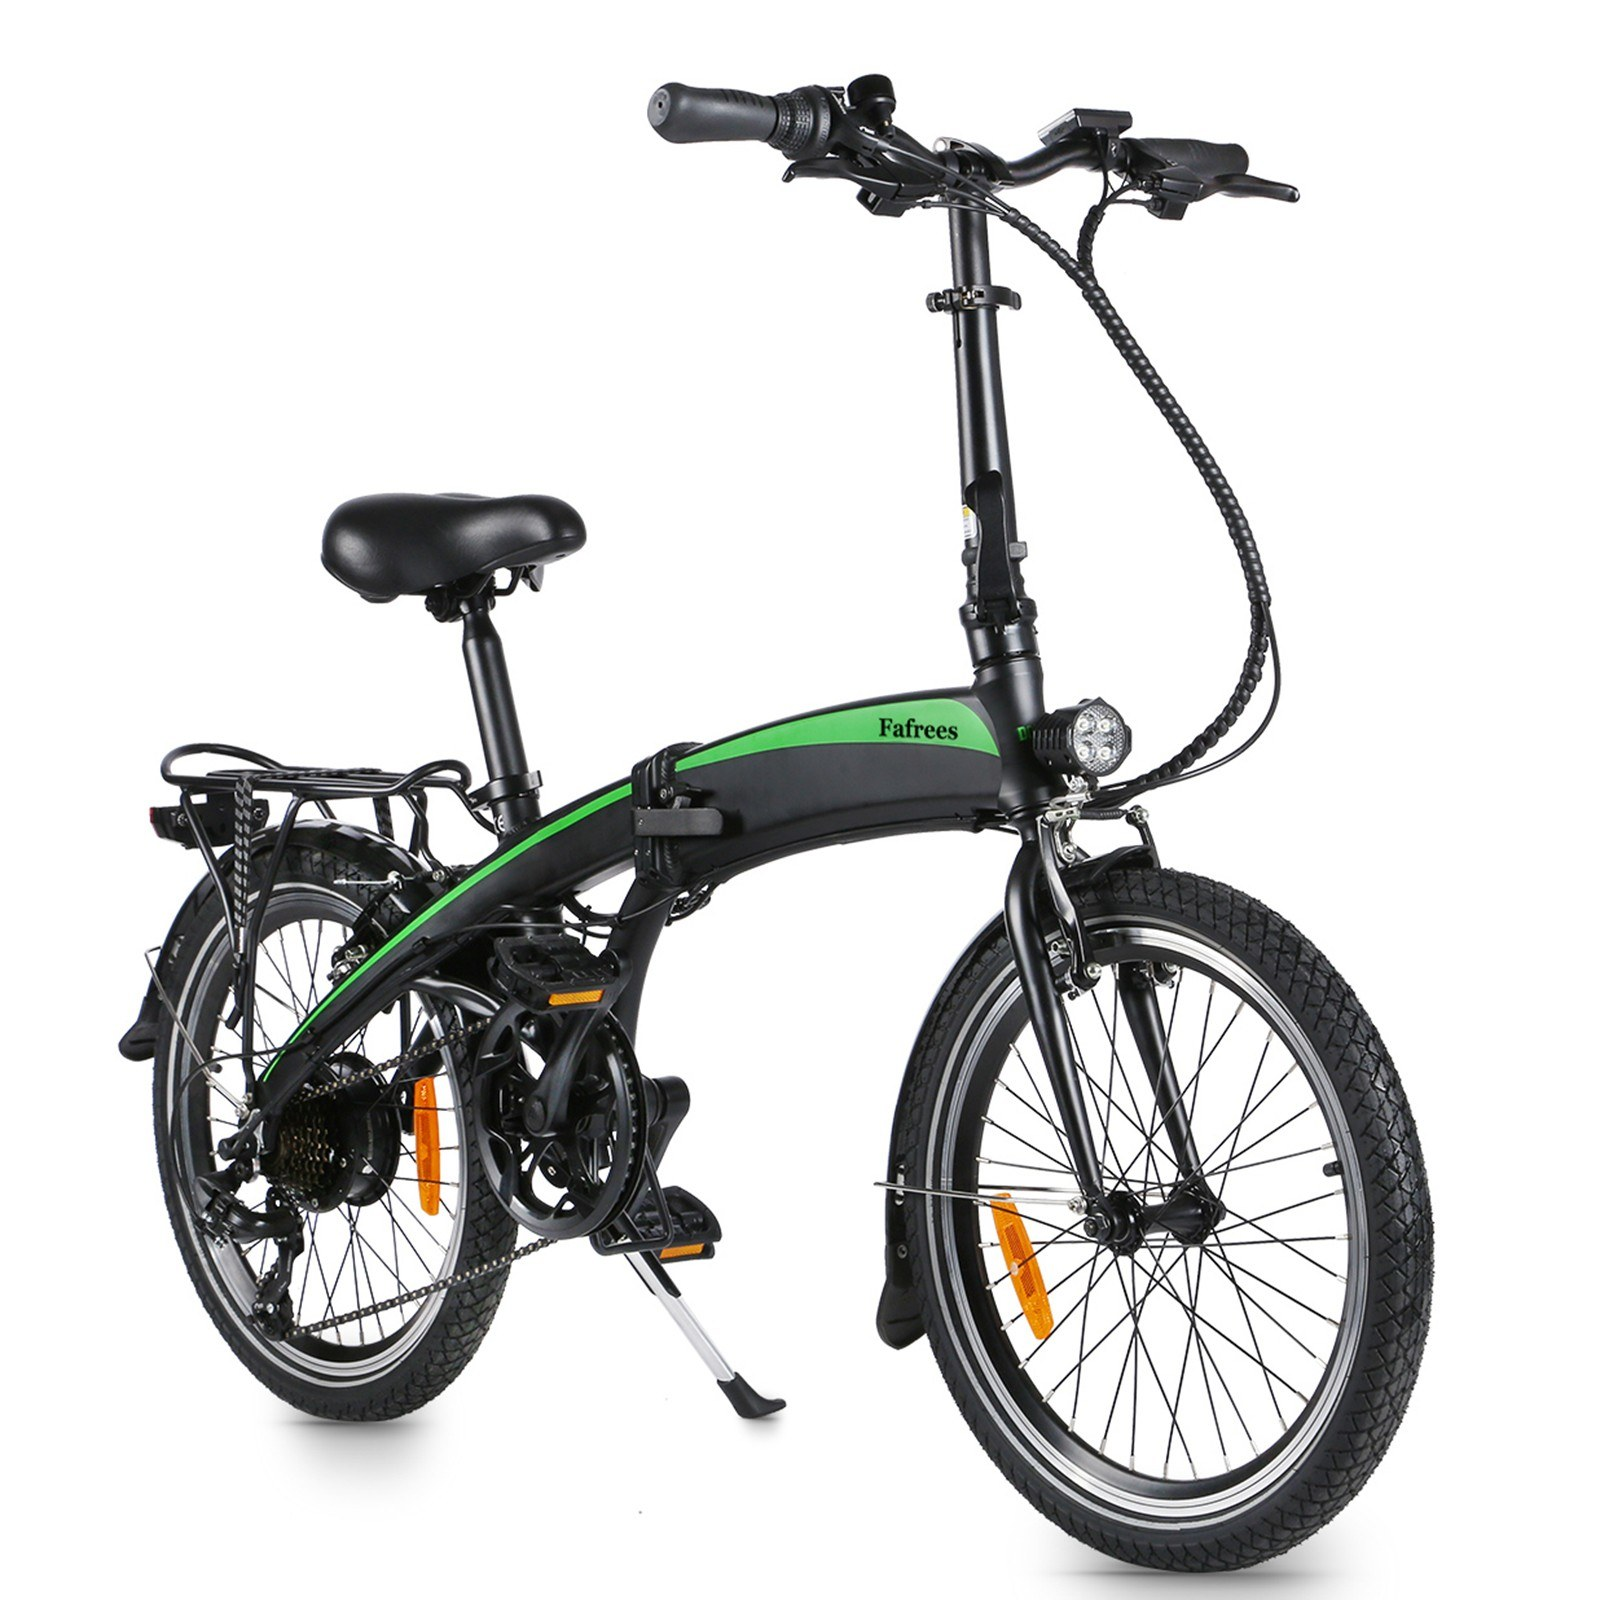 Cafago - 50% OFF Fafrees 20F055 20 Inch Folding Electric Bicycle with 7.5AH Battery 33 – 35km Range,free shipping+$749.68